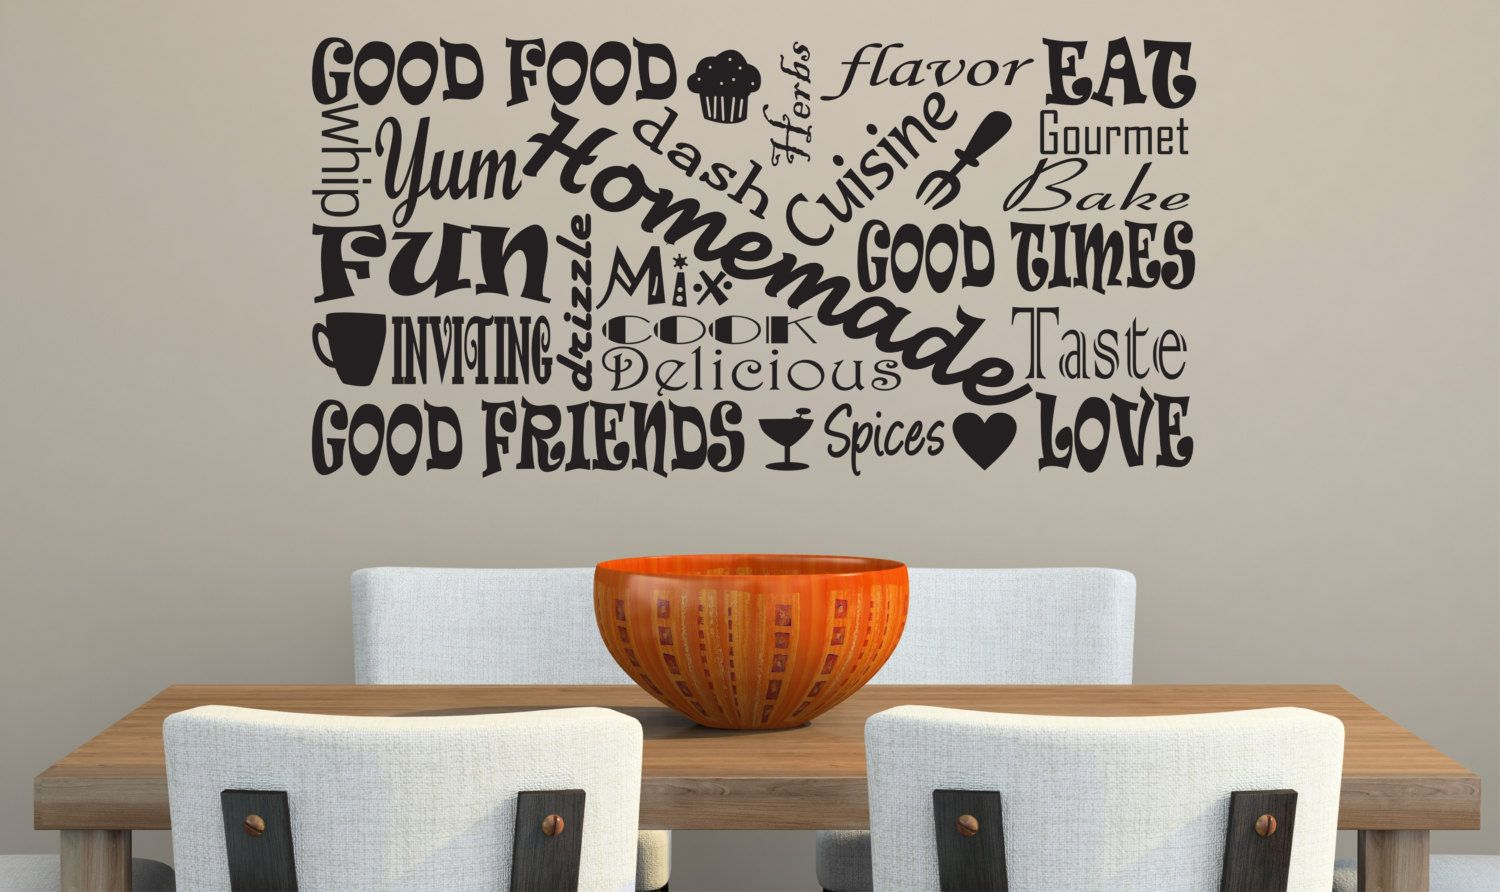 kitchen vinyl decal large size subway art by davisvinyldesigns 28 00 country kitchen wall on kitchen decor quotes wall decals id=57036